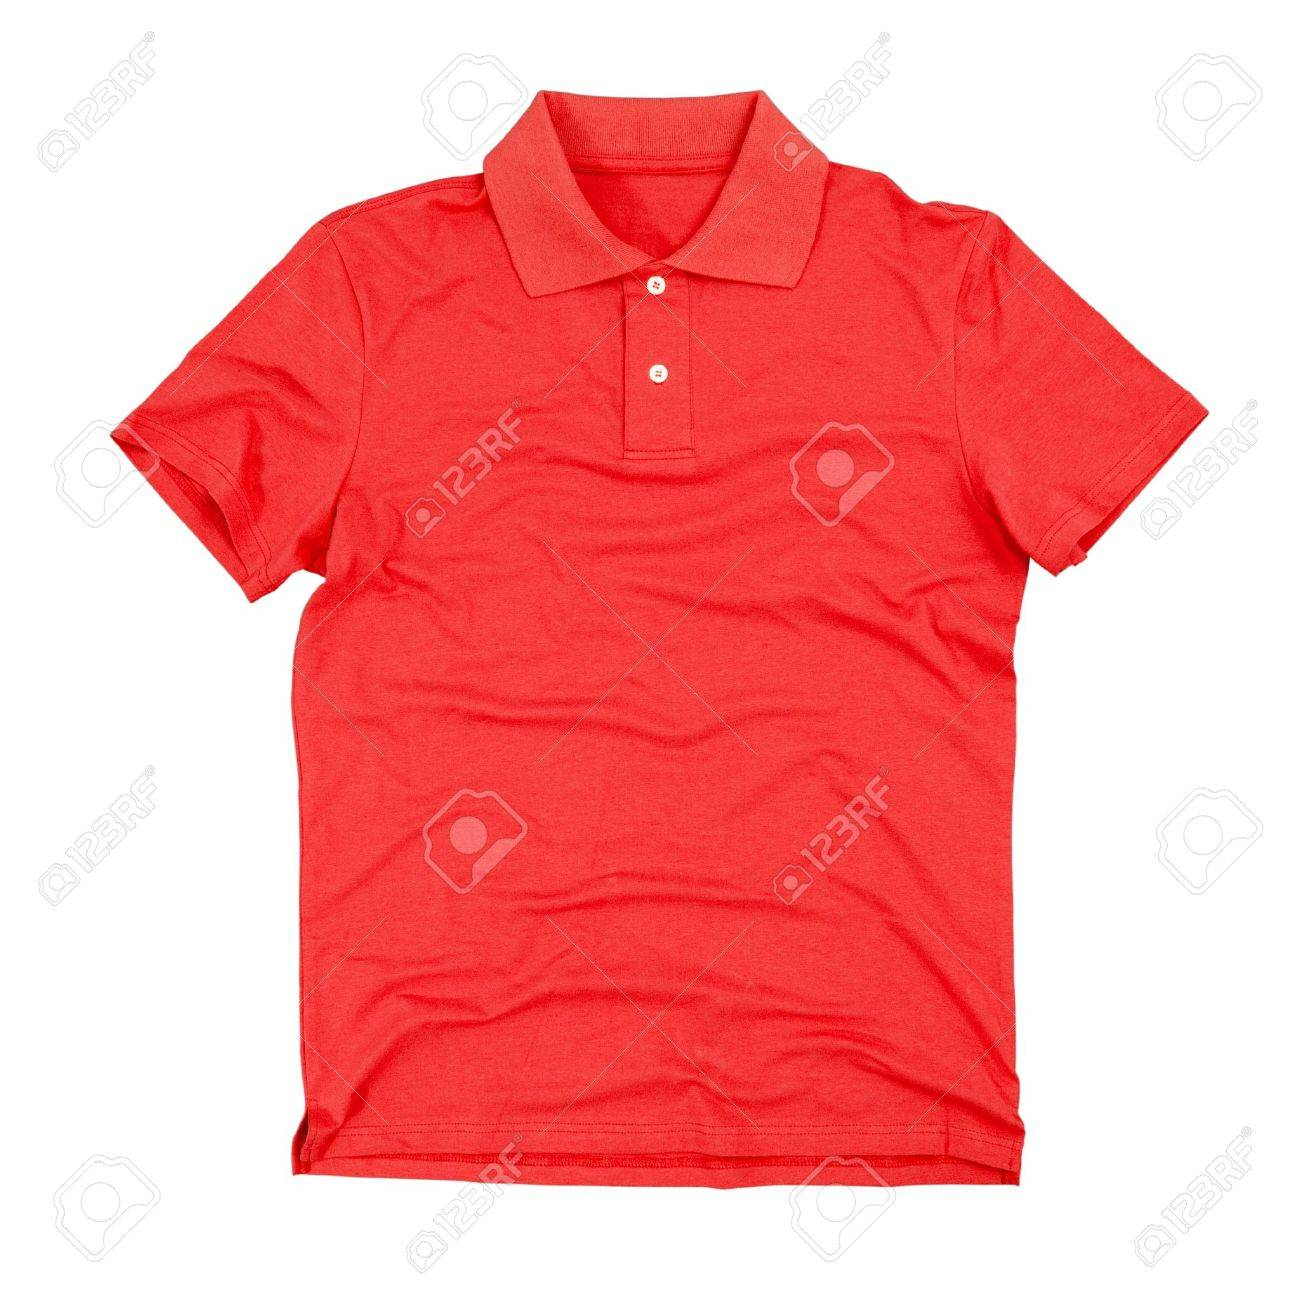 Black t shirt red collar - Red Collar Photograph Of Blank Polo T Shirt Isolated On White Background Stock